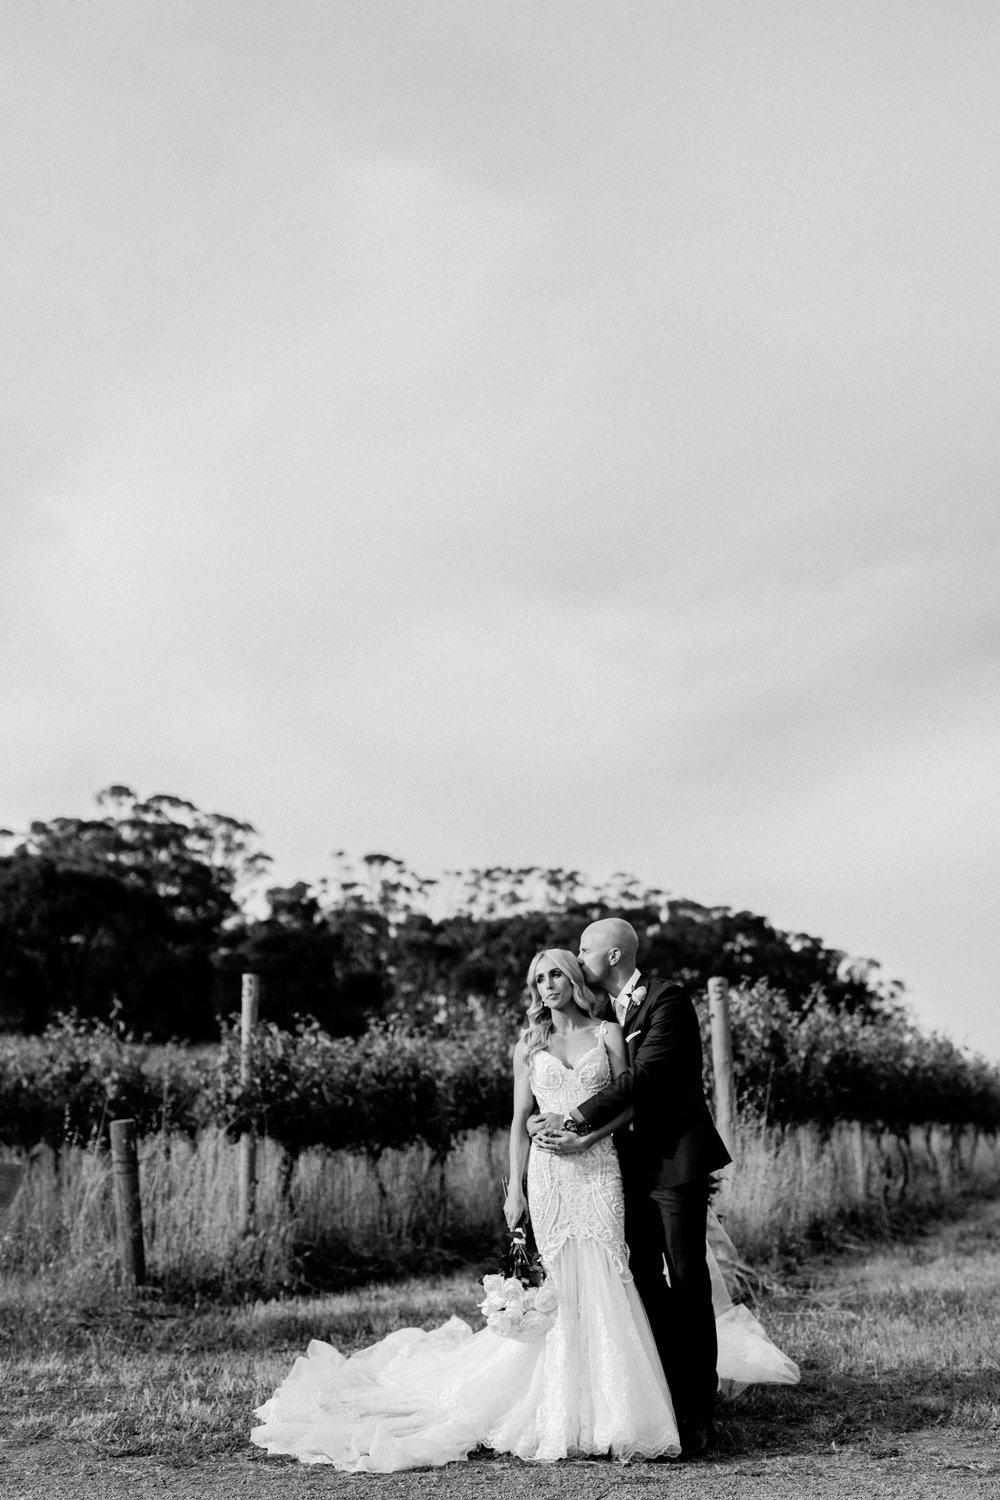 Claire & Dave - Coriole Winery Wedding - Natural Wedding Photographer in Adelaide - Katherine Schultz - www.katherineschultzphotography.com_0058.jpg